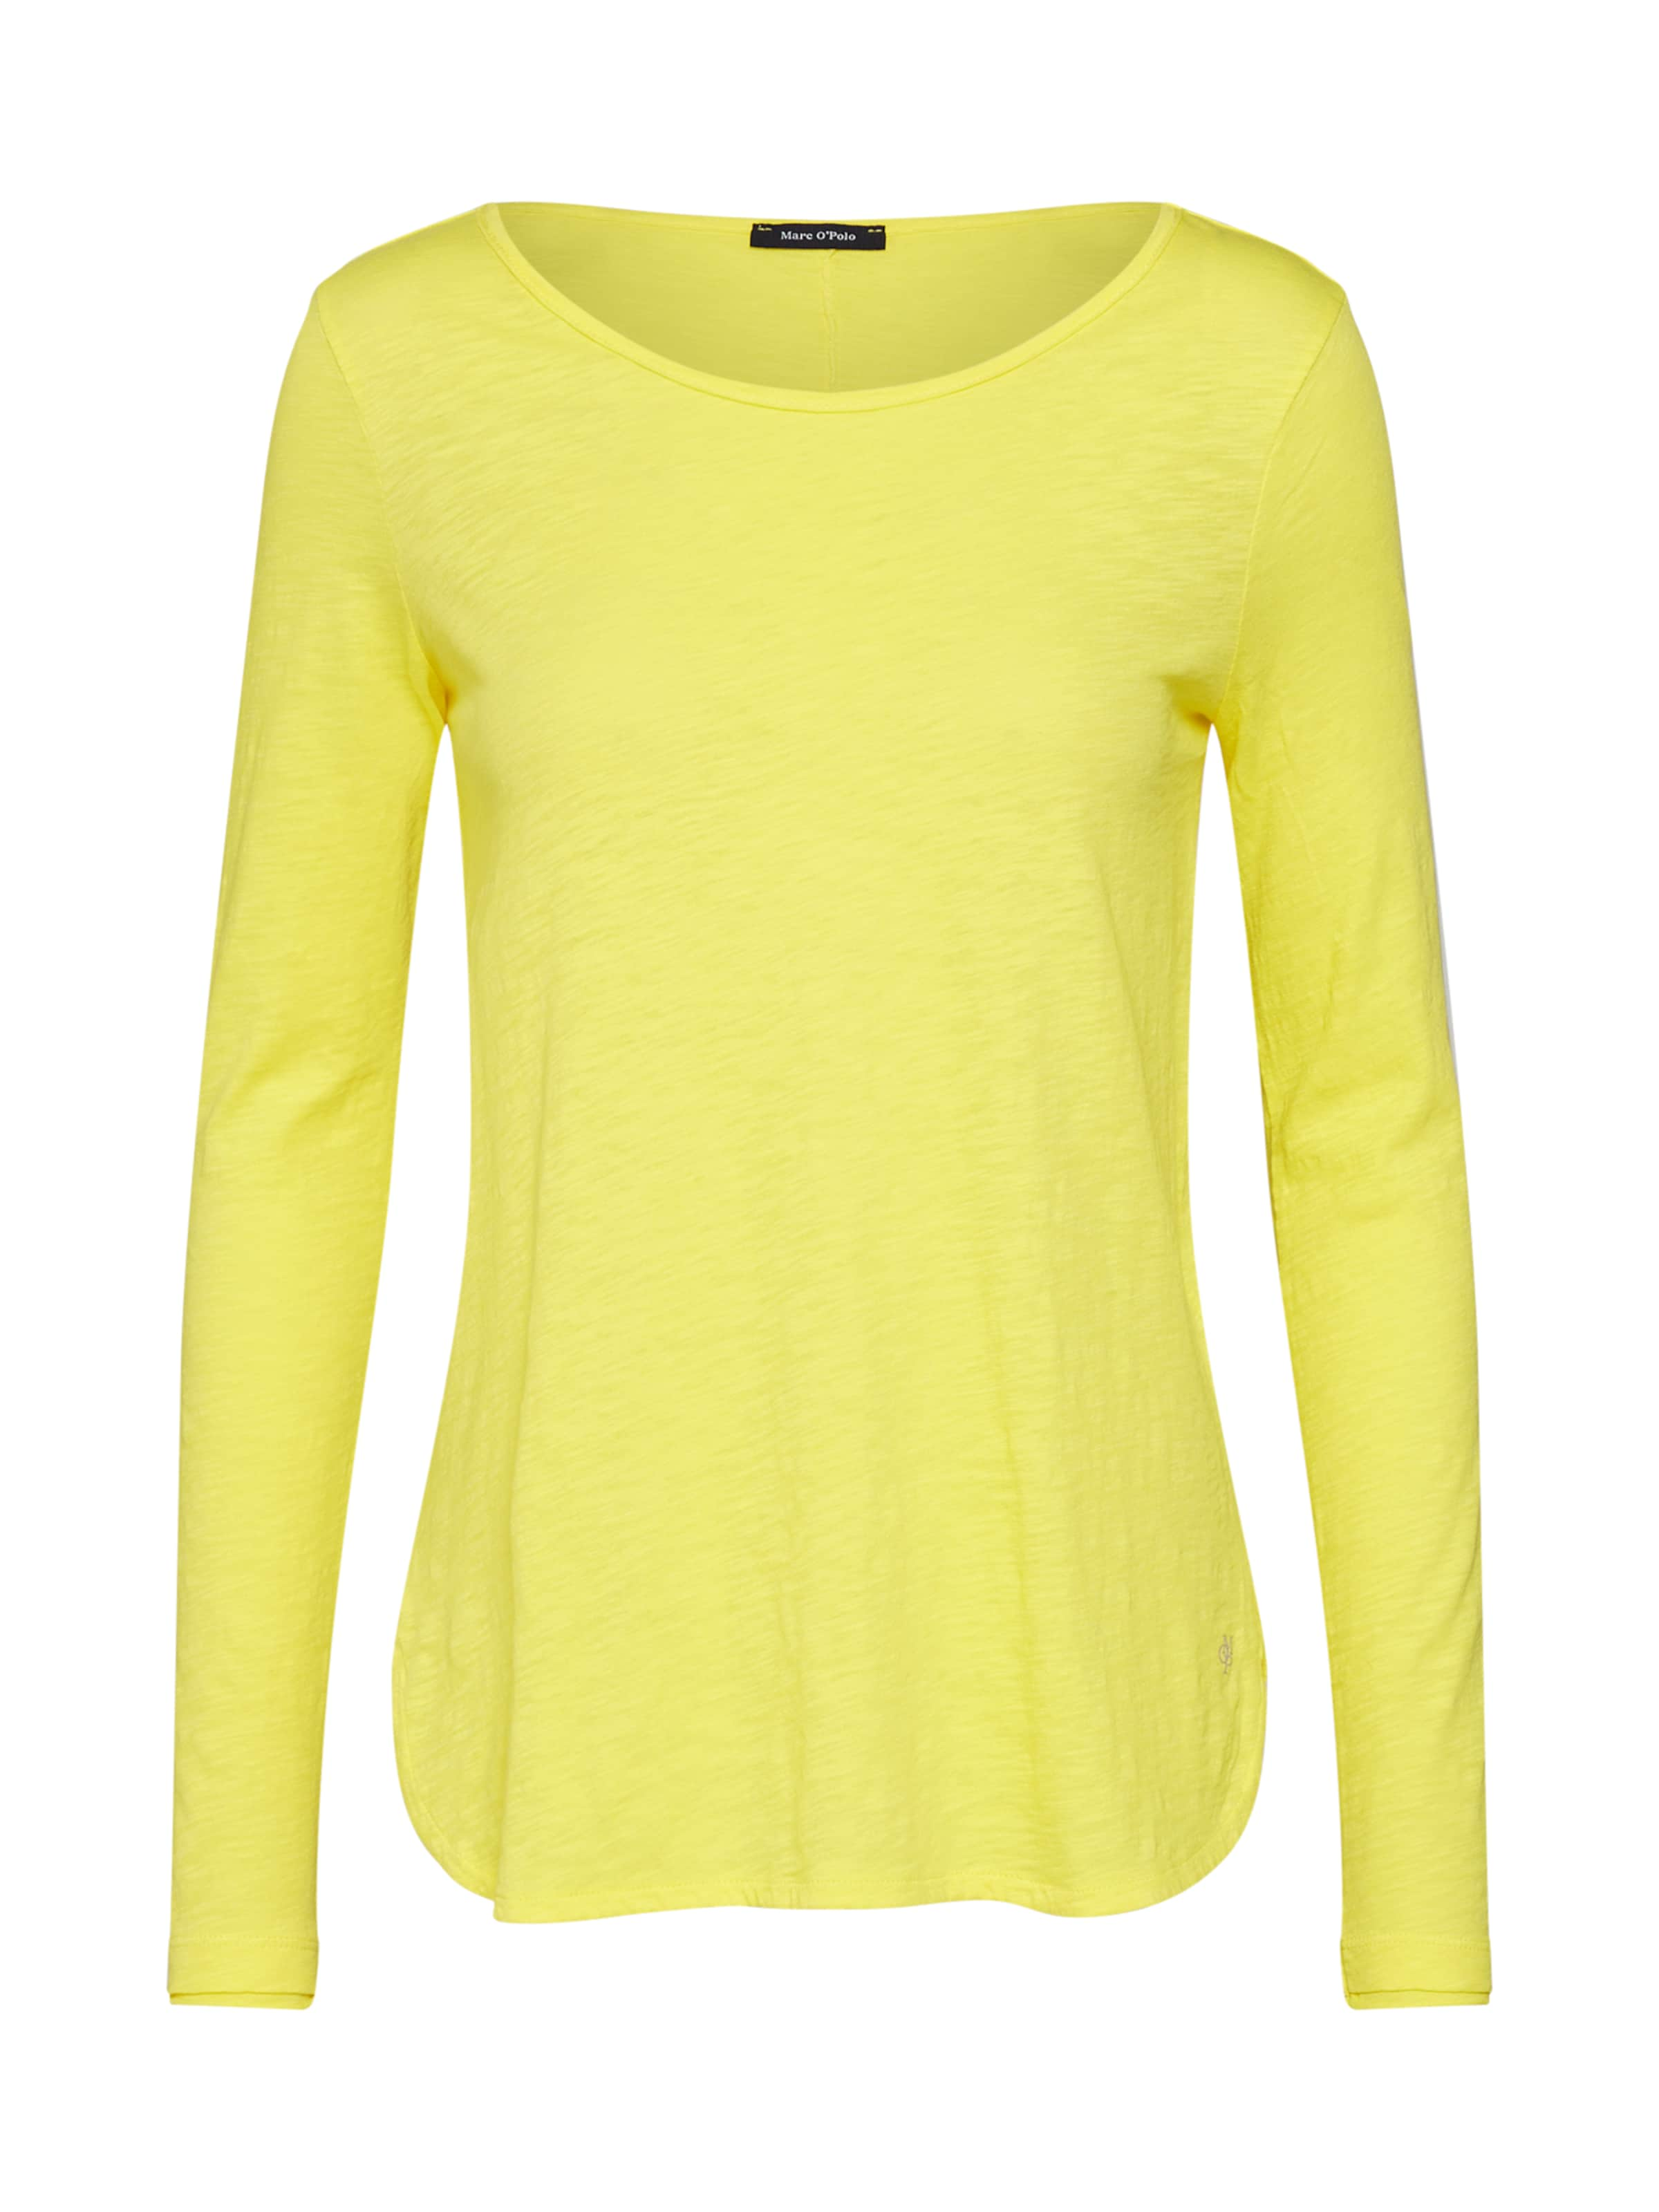 O'polo shirt Jaune Marc En T xBeCord